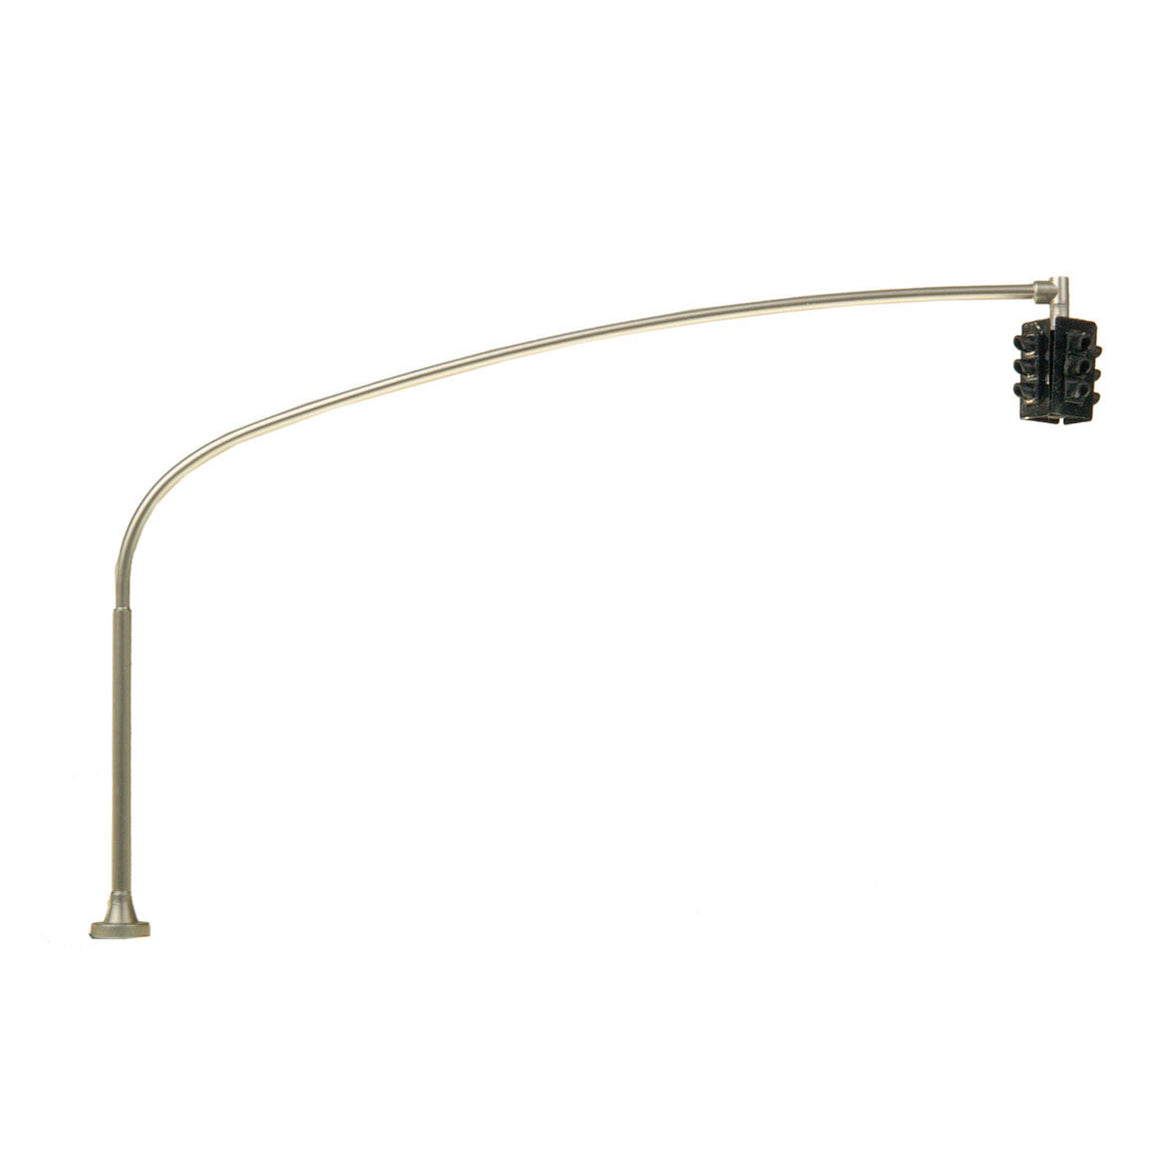 HO Scale: Traffic Light - Hanging 4-Way